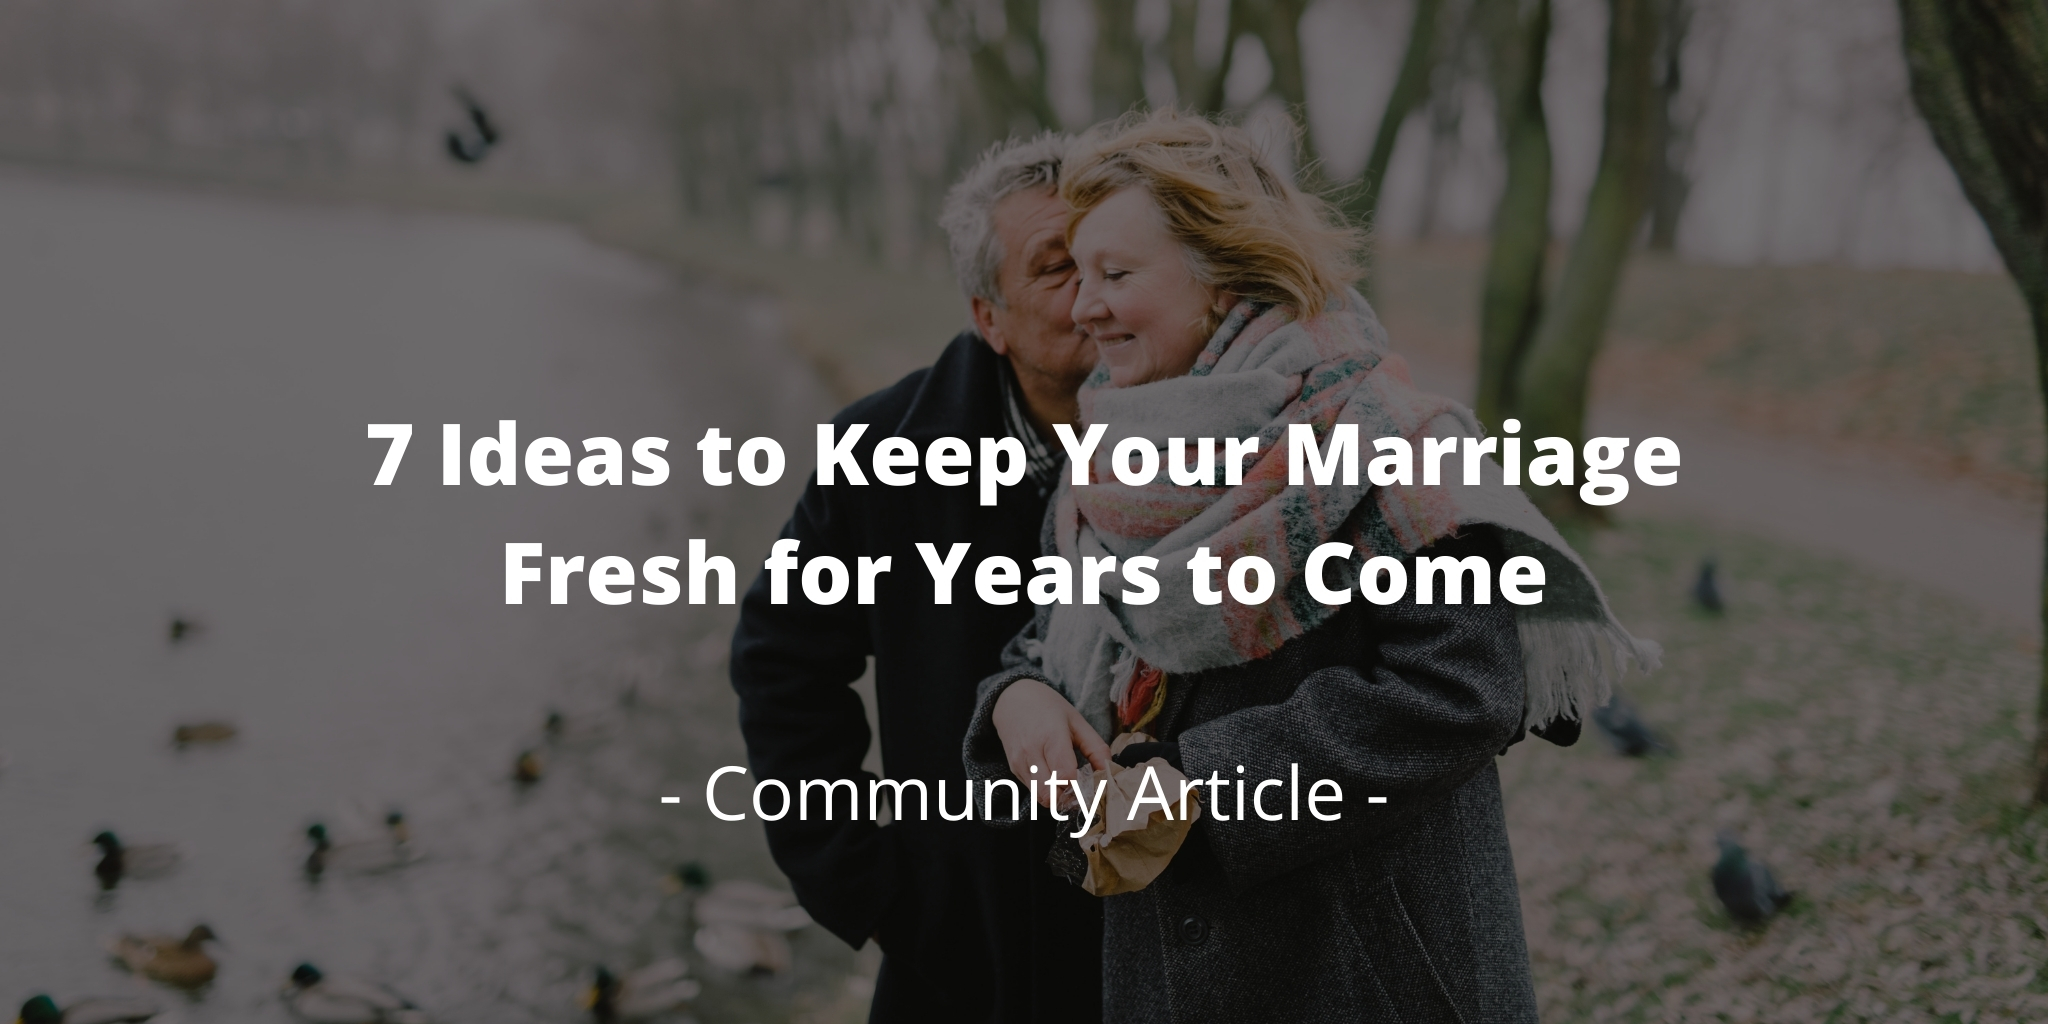 7 Ideas to Keep Your Marriage Fresh for Years to Come